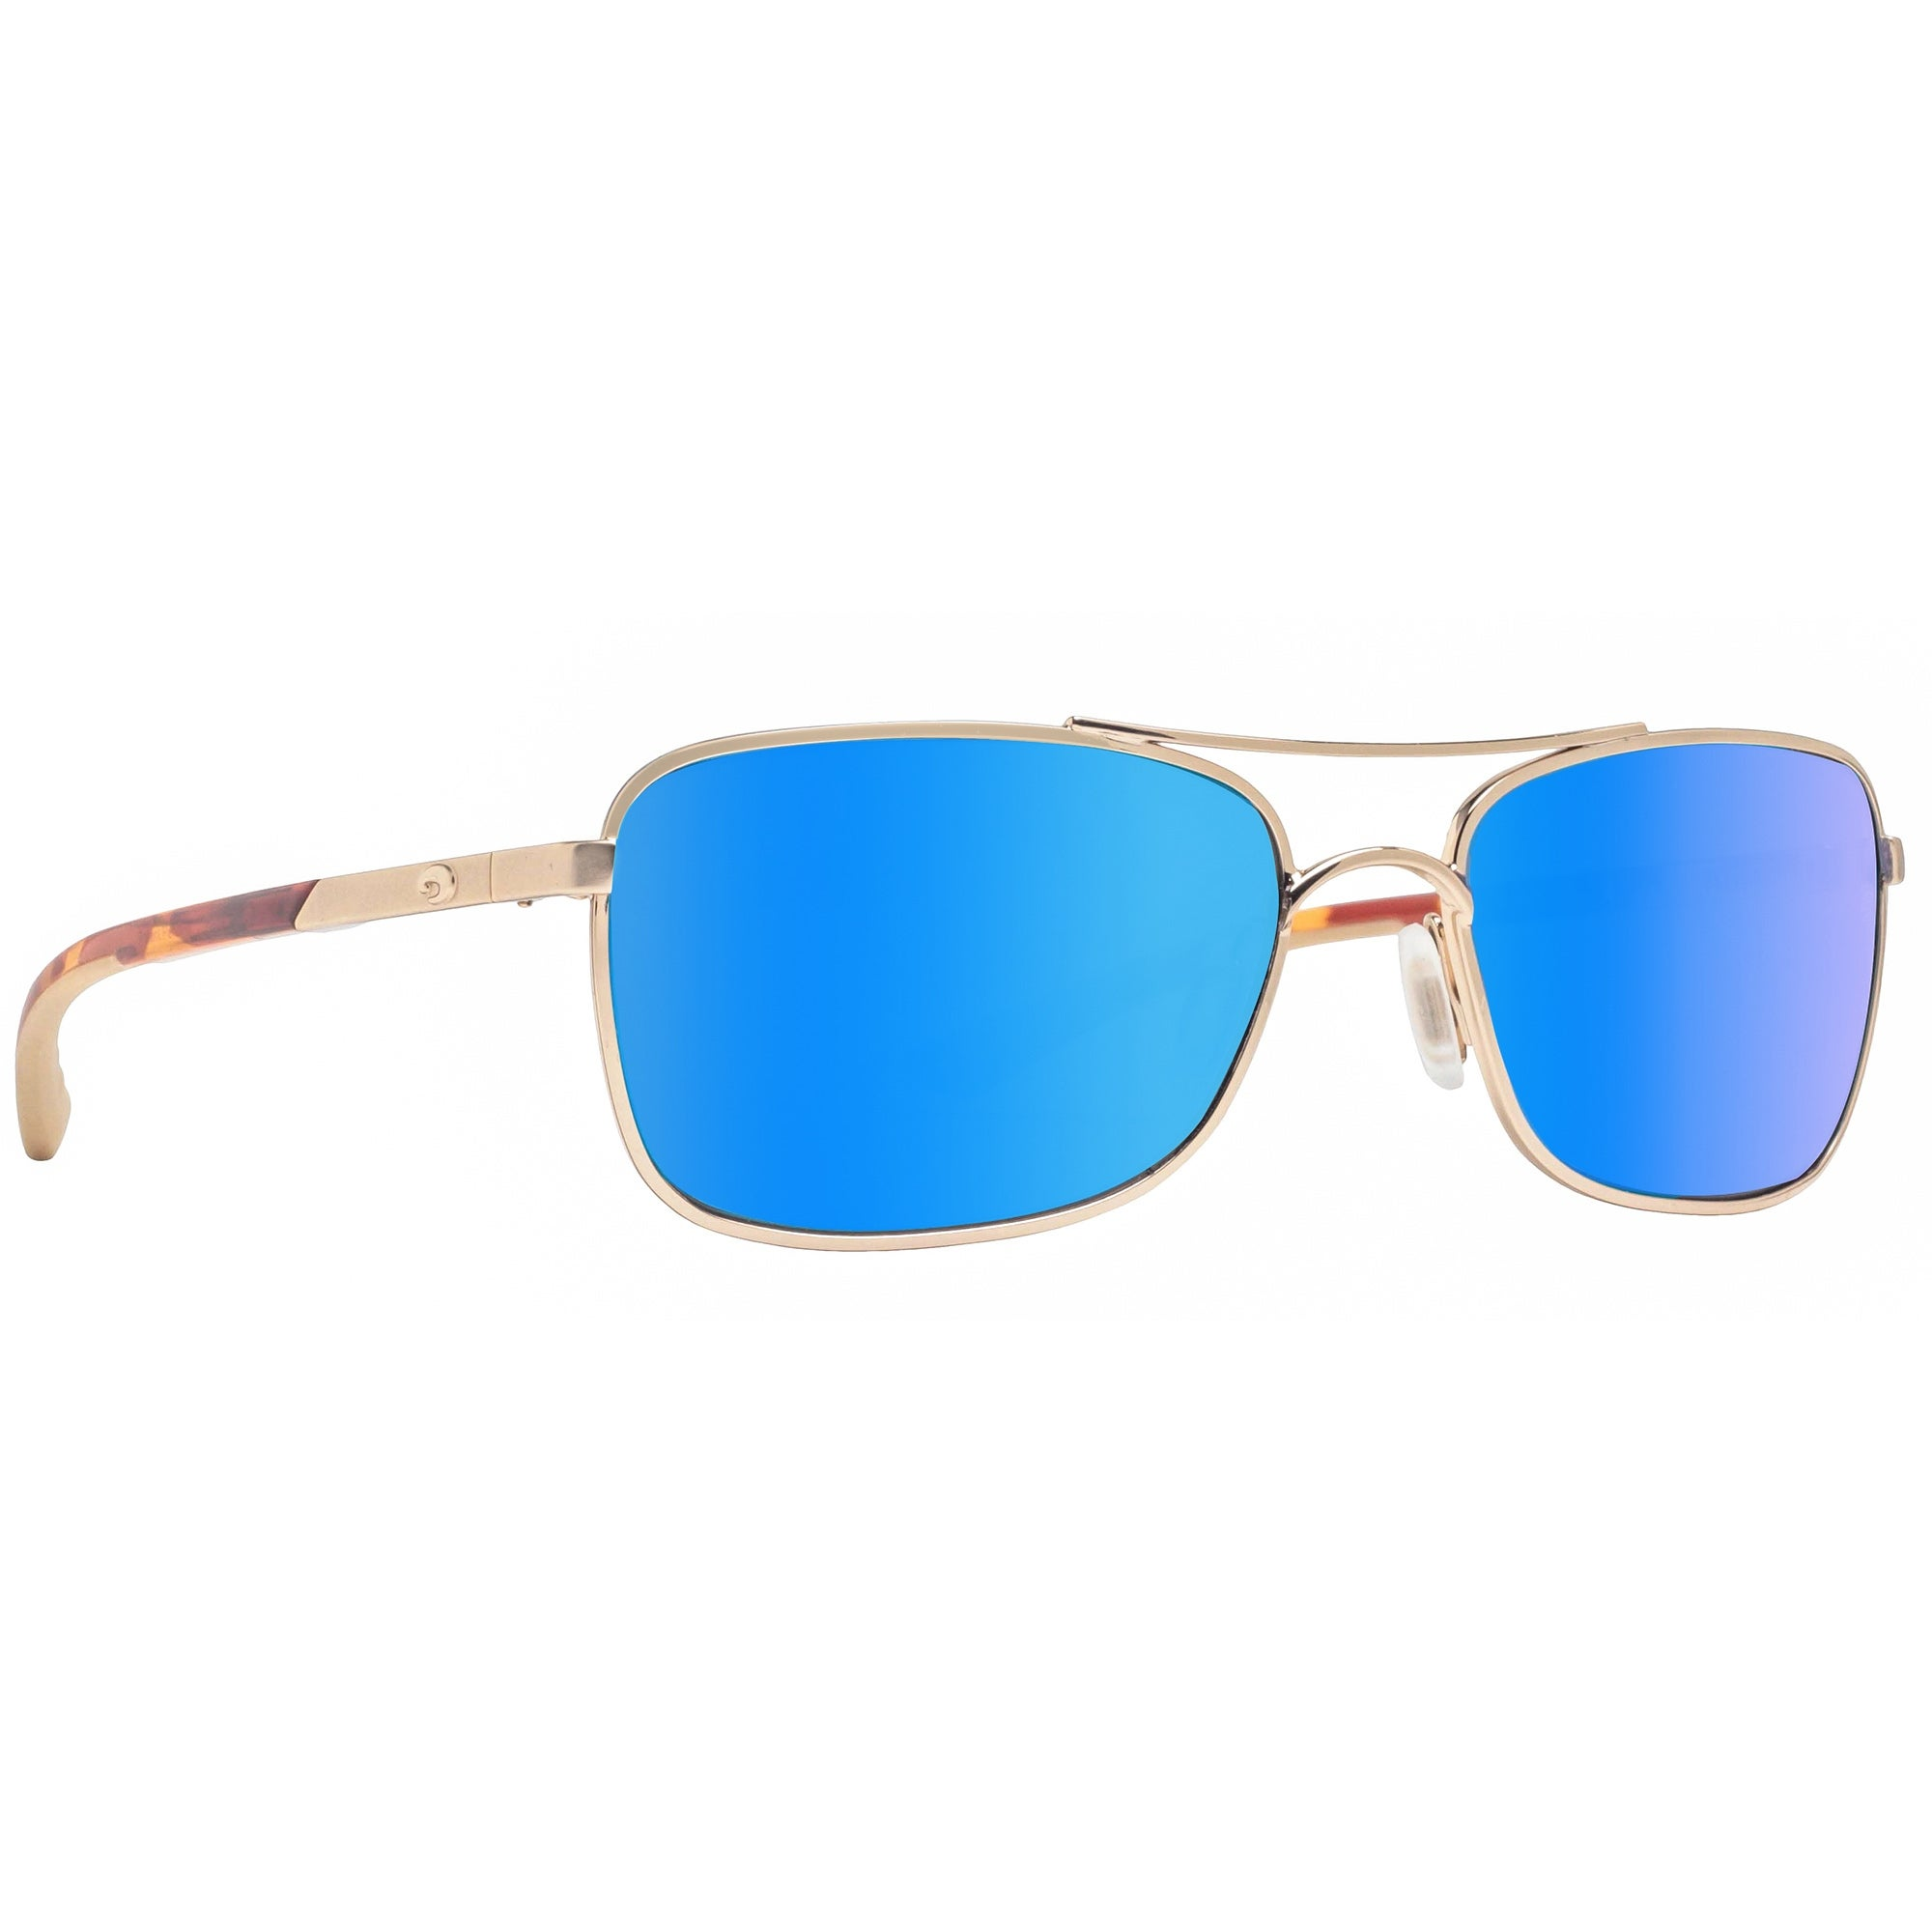 8ab3067f4ef1d Shop Costa Del Mar Palapa AP64 OBMGLP Rose Gold Blue Mirror Polarized 580G  Sunglasses - rose gold - 57mm-18mm-130mm - Free Shipping Today - Overstock  - ...